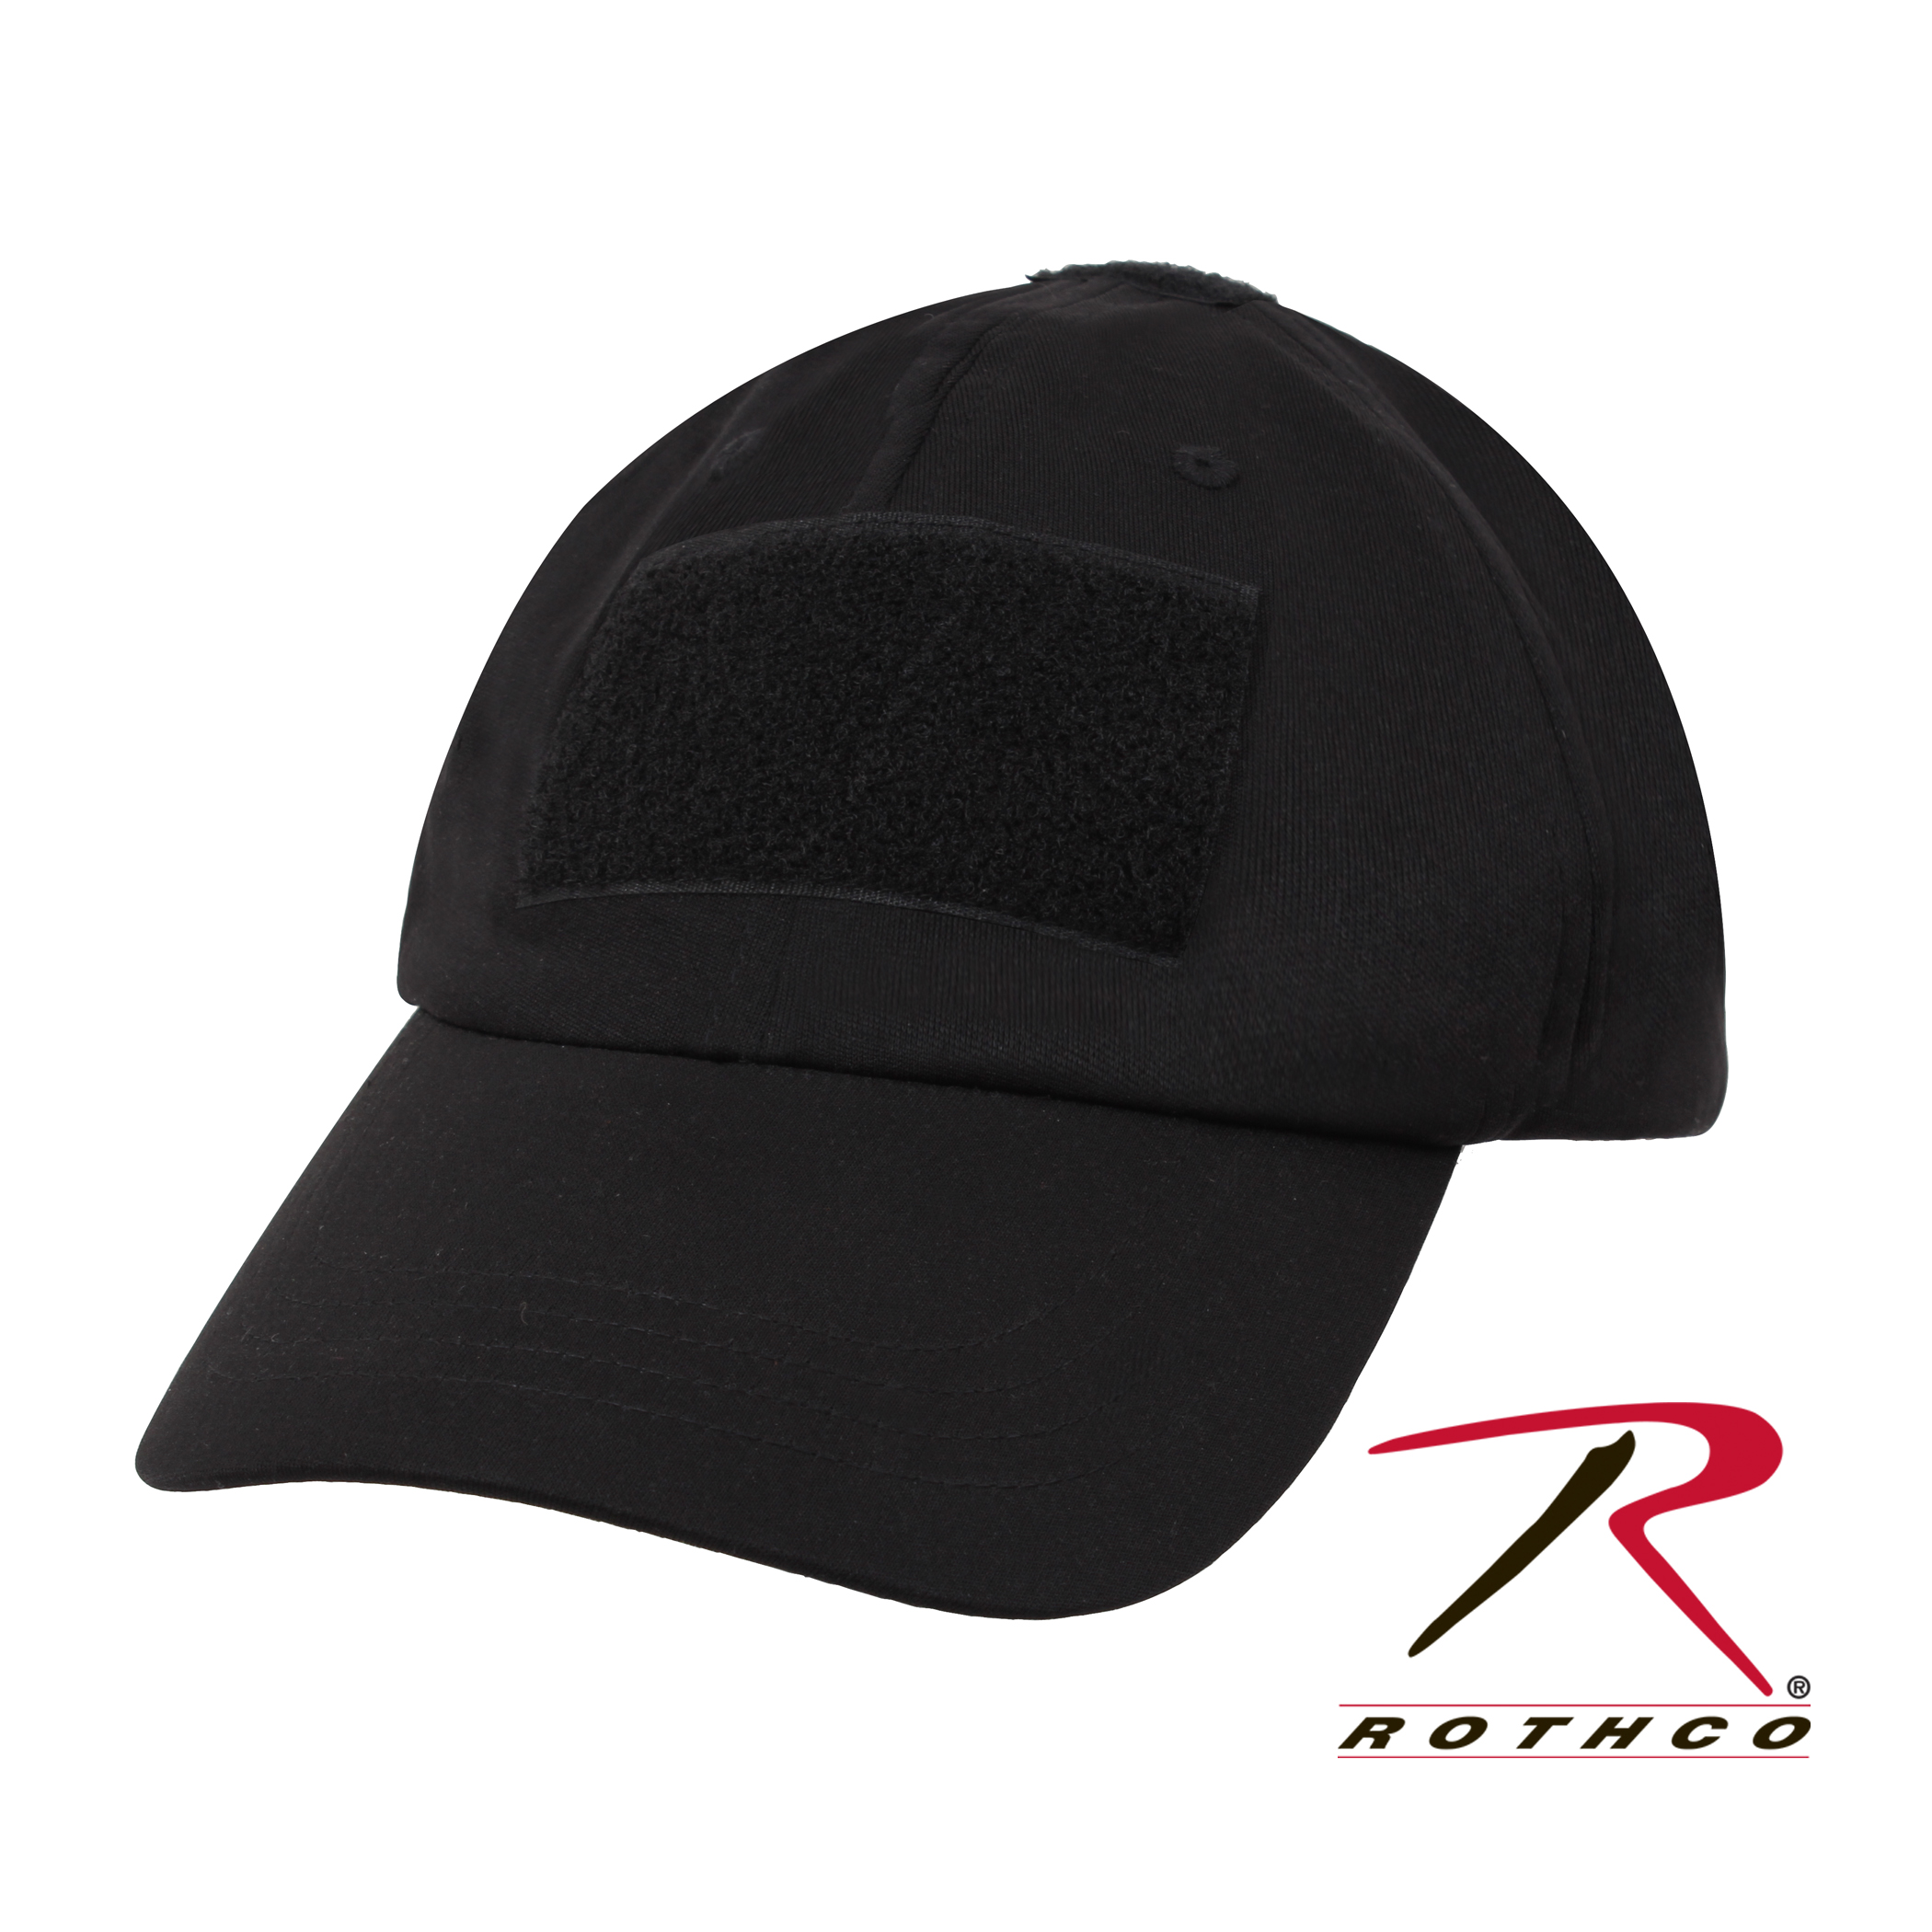 Rothco Soft Shell Operator Cap 975645799a8d